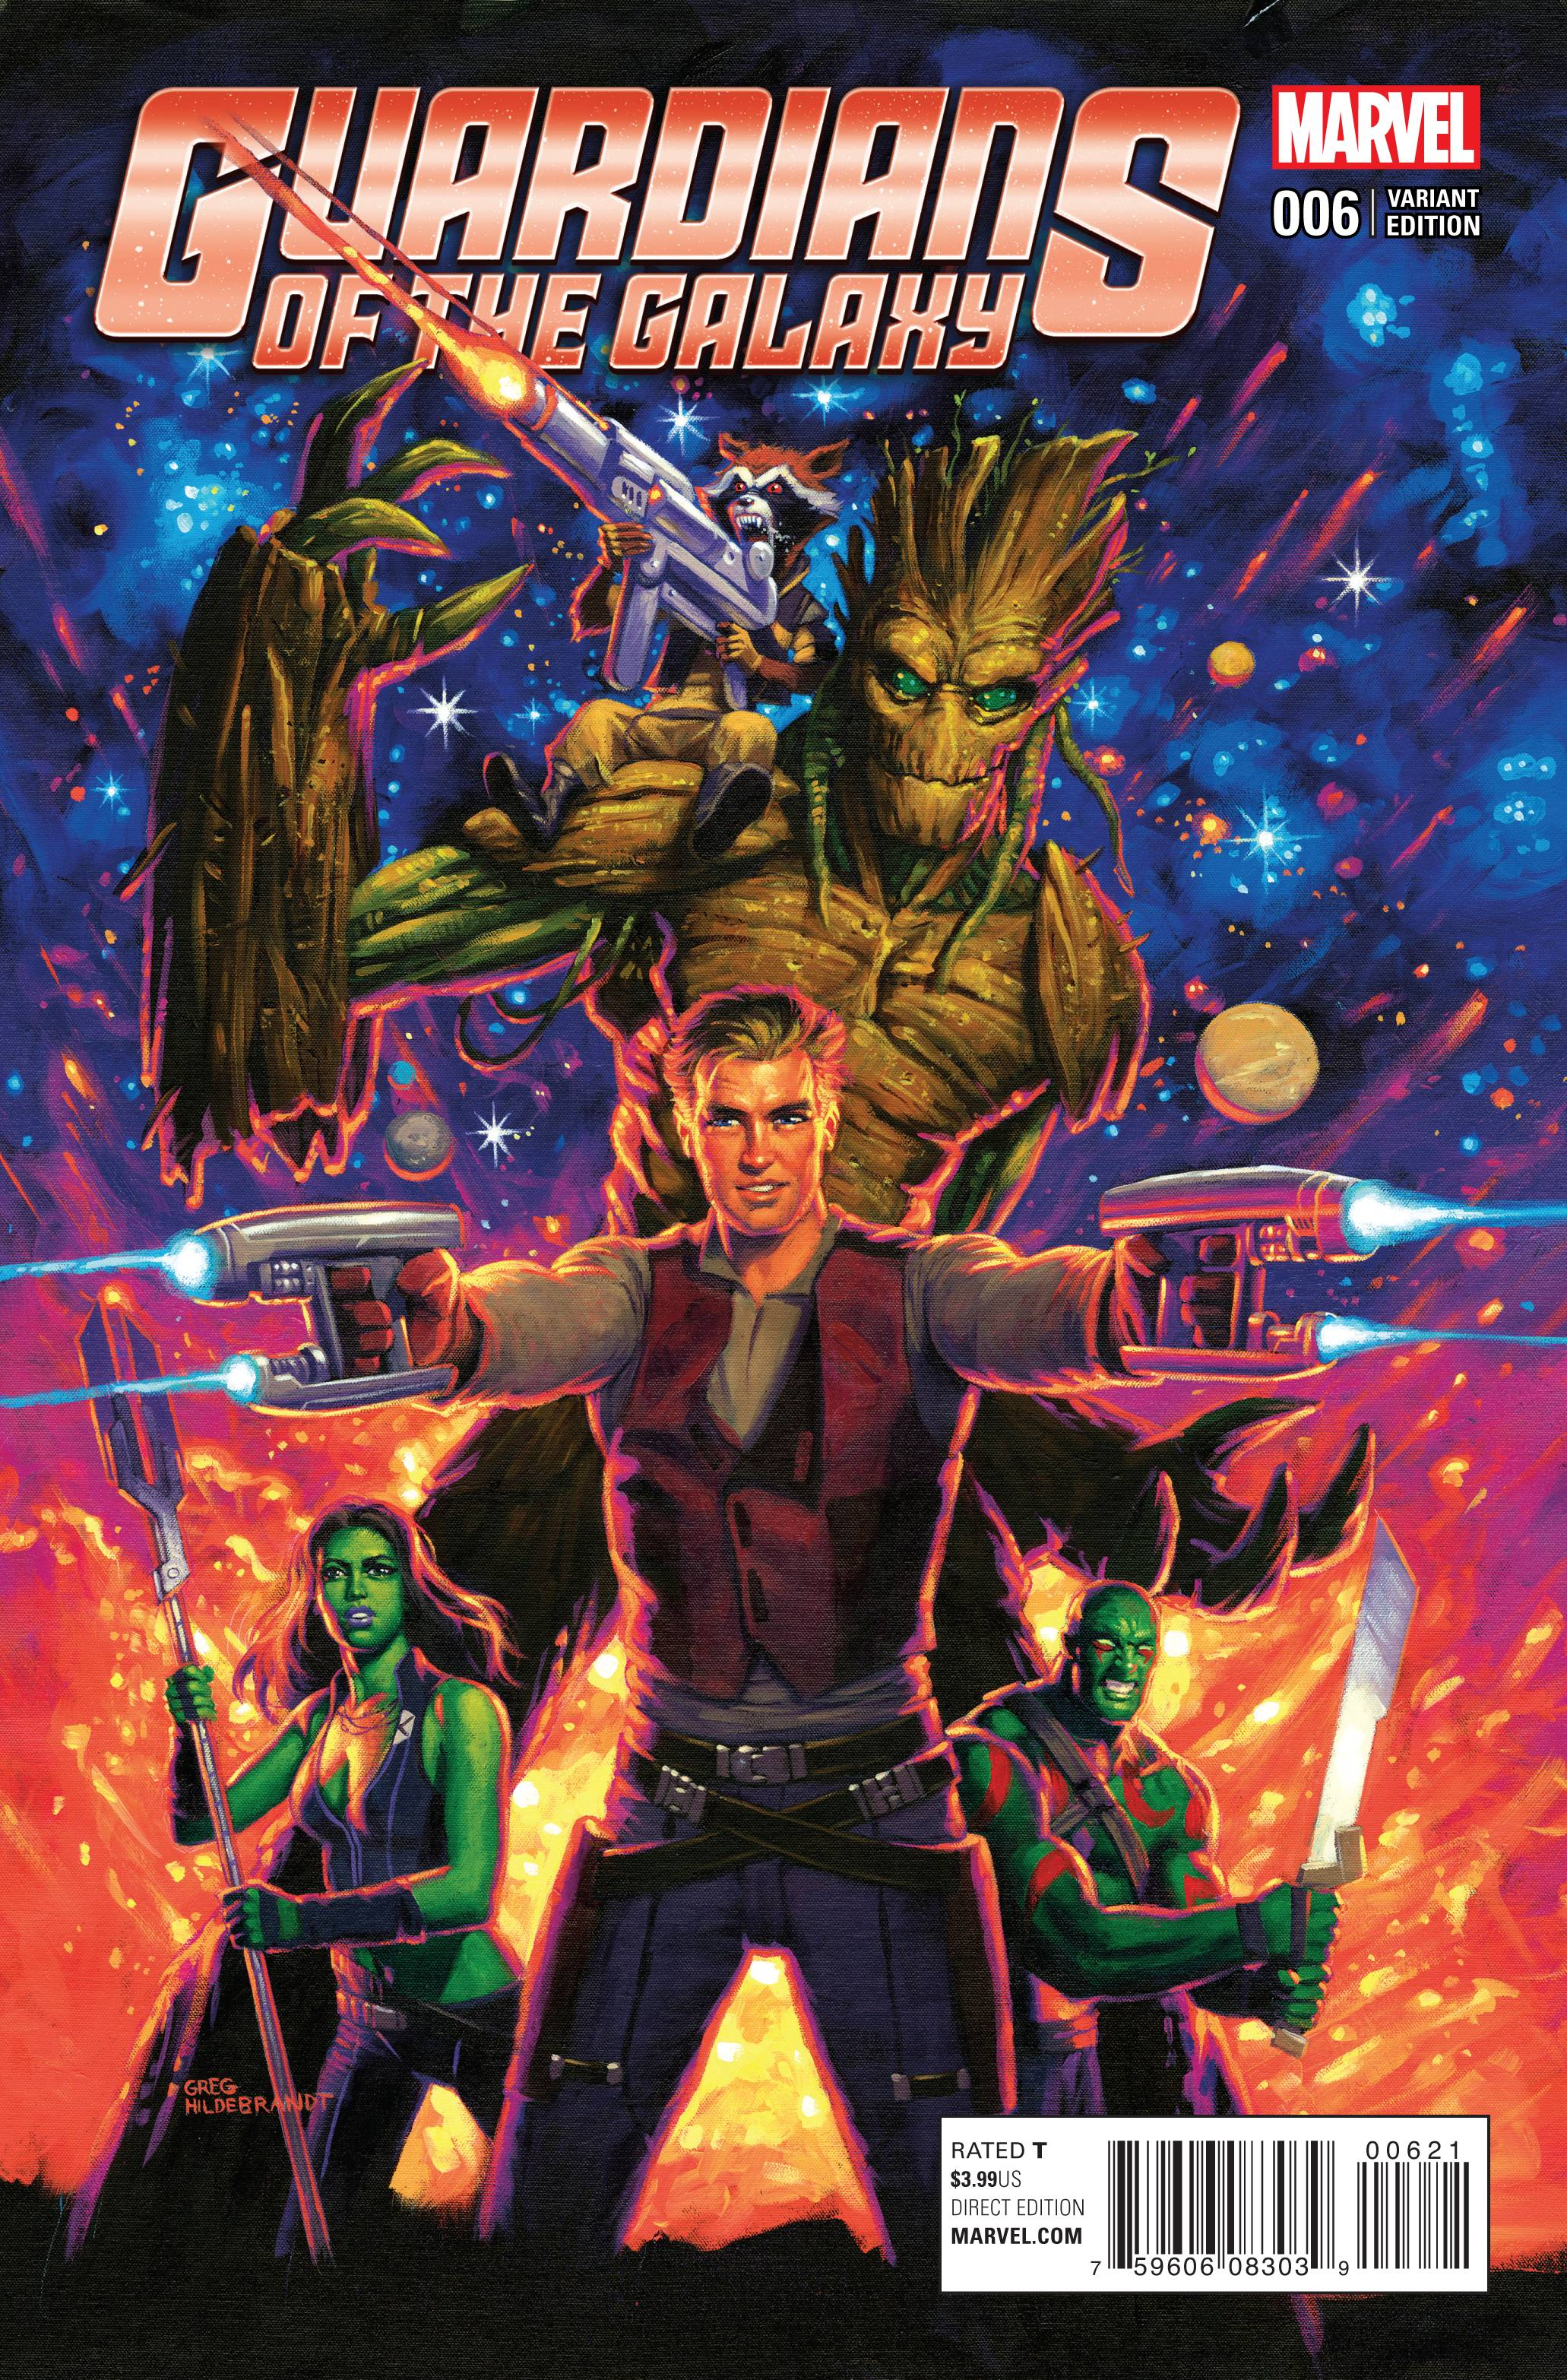 google map for android phone with Guardians Of The Galaxy 6 Hildebrandt Classic Cover on Mad Magazine 531 also Google Maps Is Tracking Your Every Move together with Copilotgps as well Catchthebusapp additionally 1449 Dianping V64.